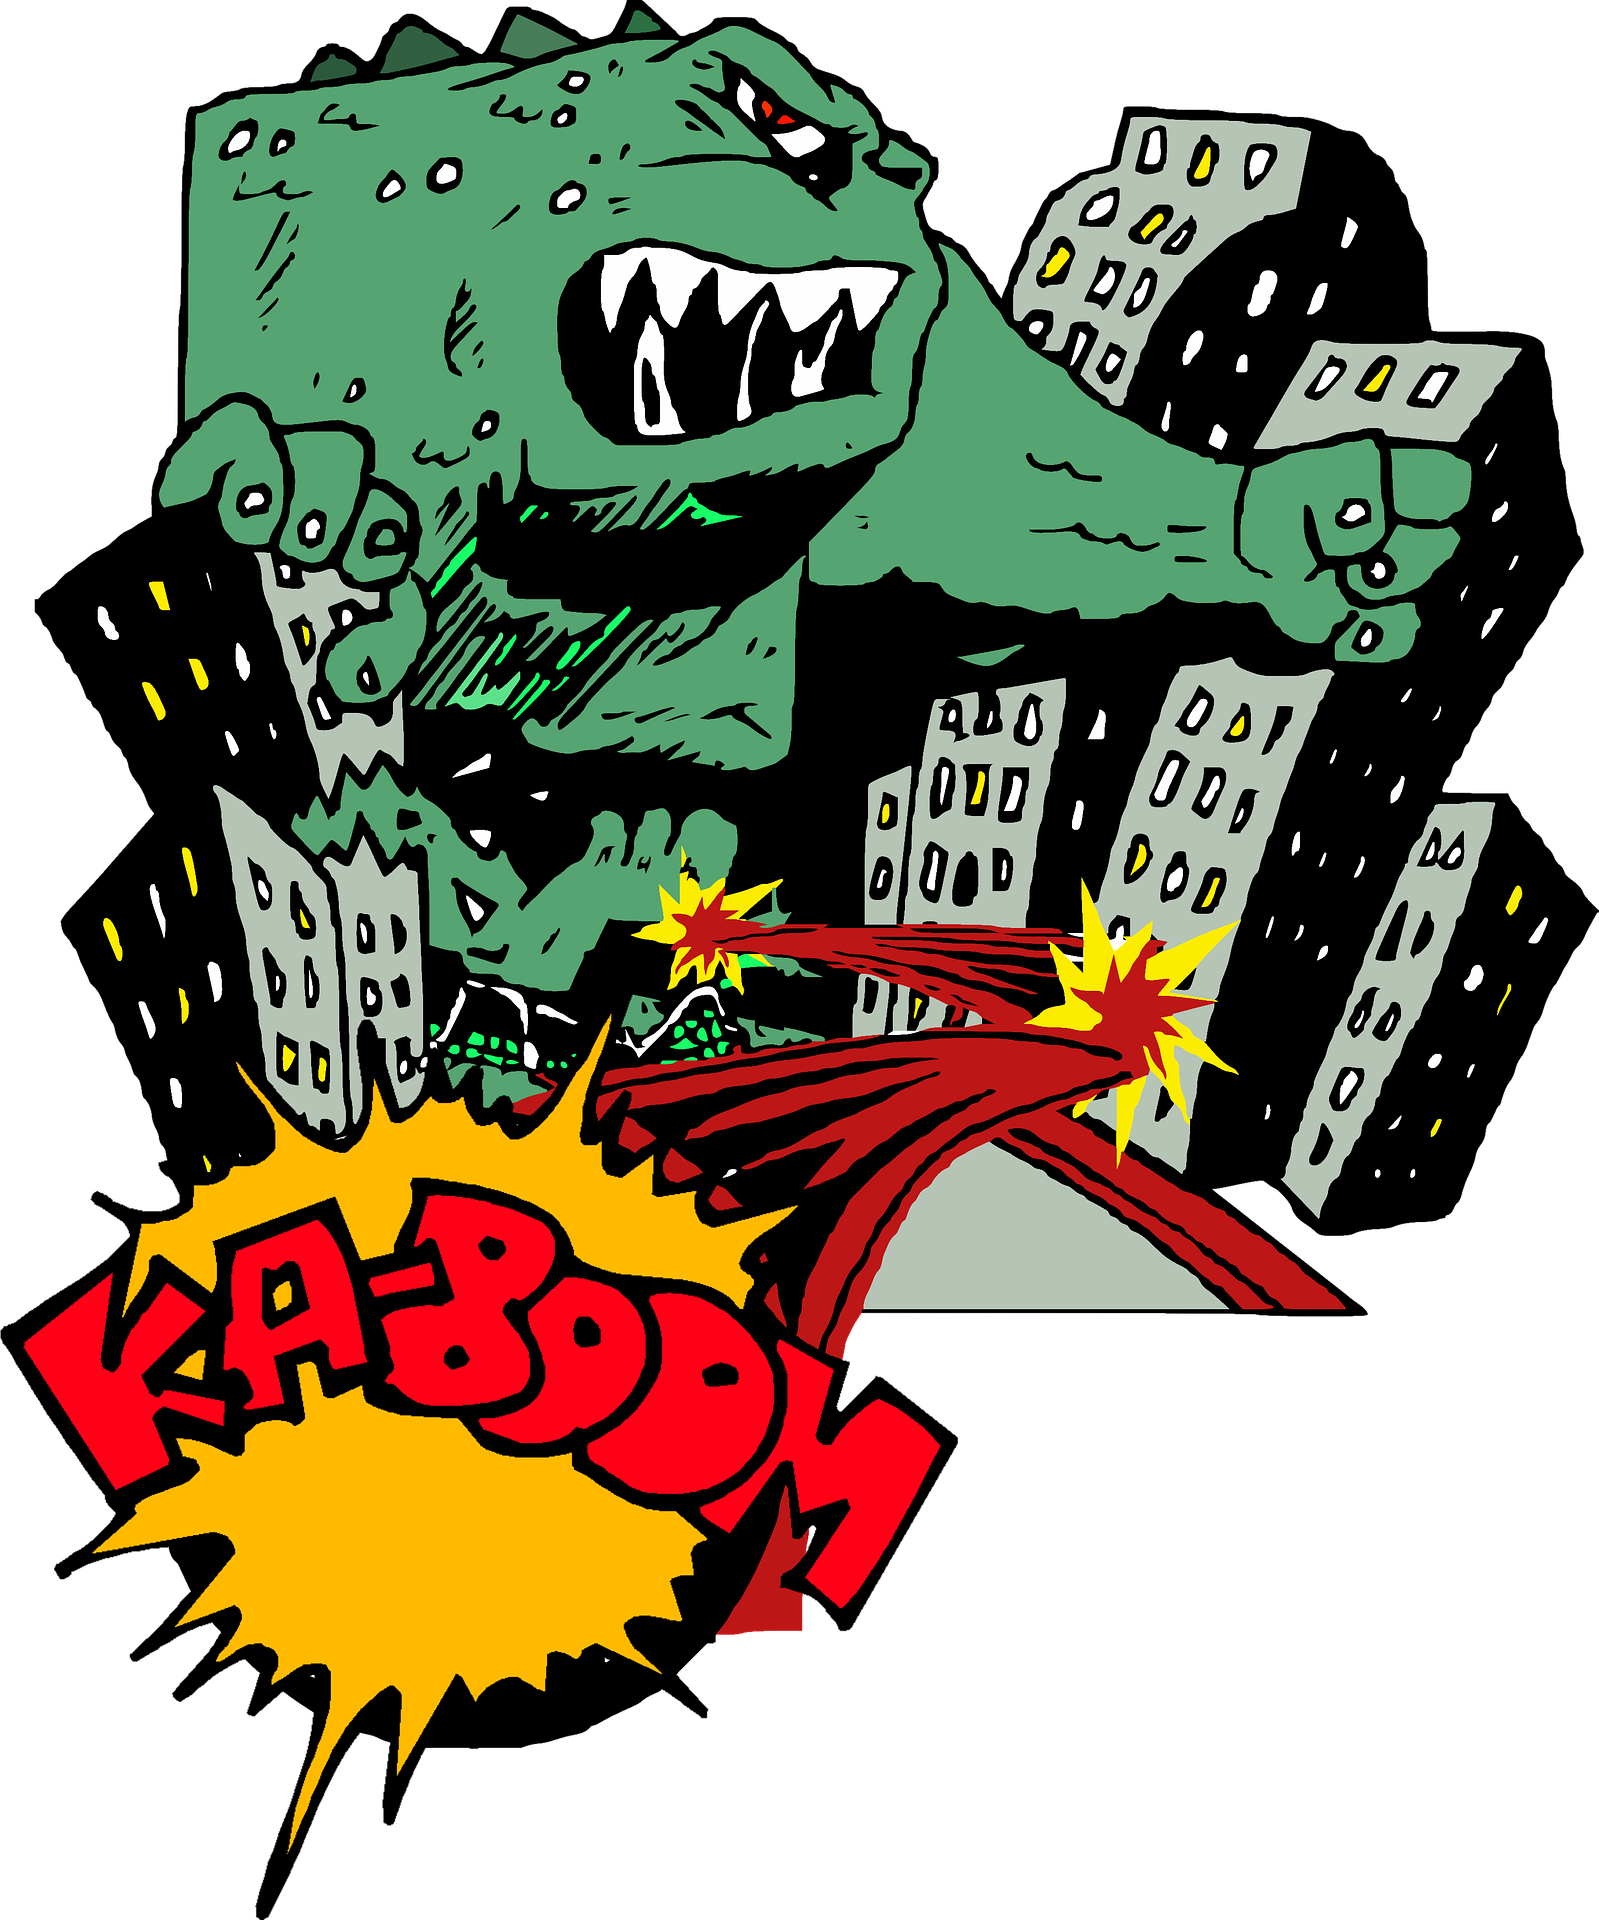 monster-1524001_1920.png